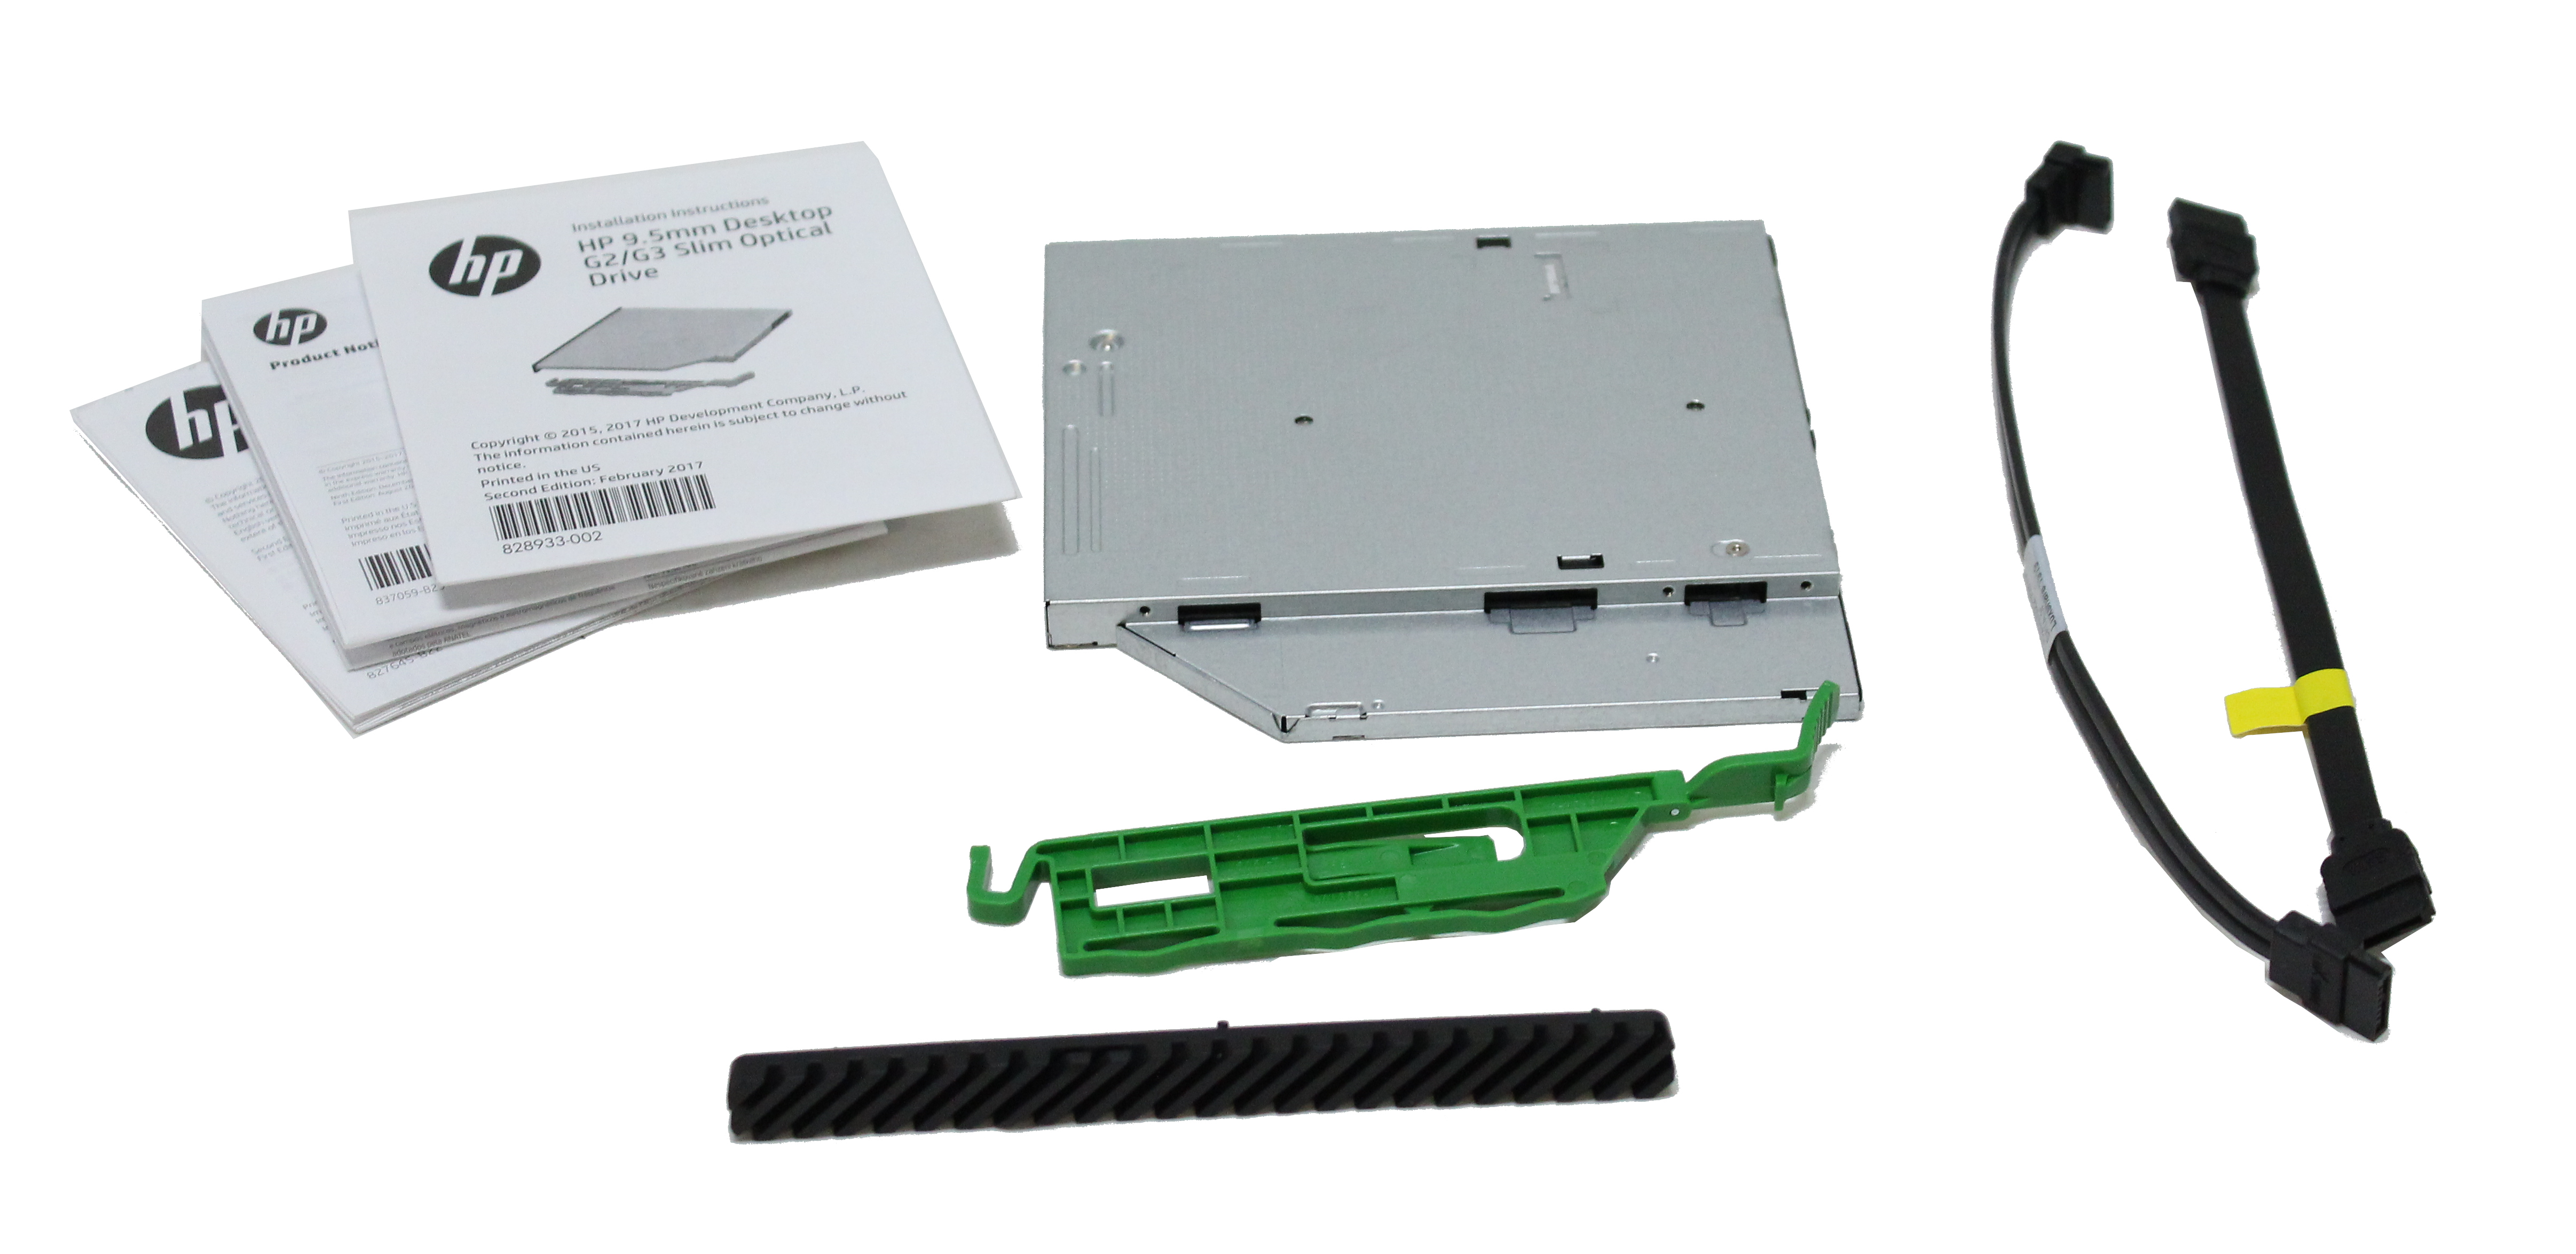 HP Optical Slim Drive Super Multi DVD Writer GUD1N 849055-6C3